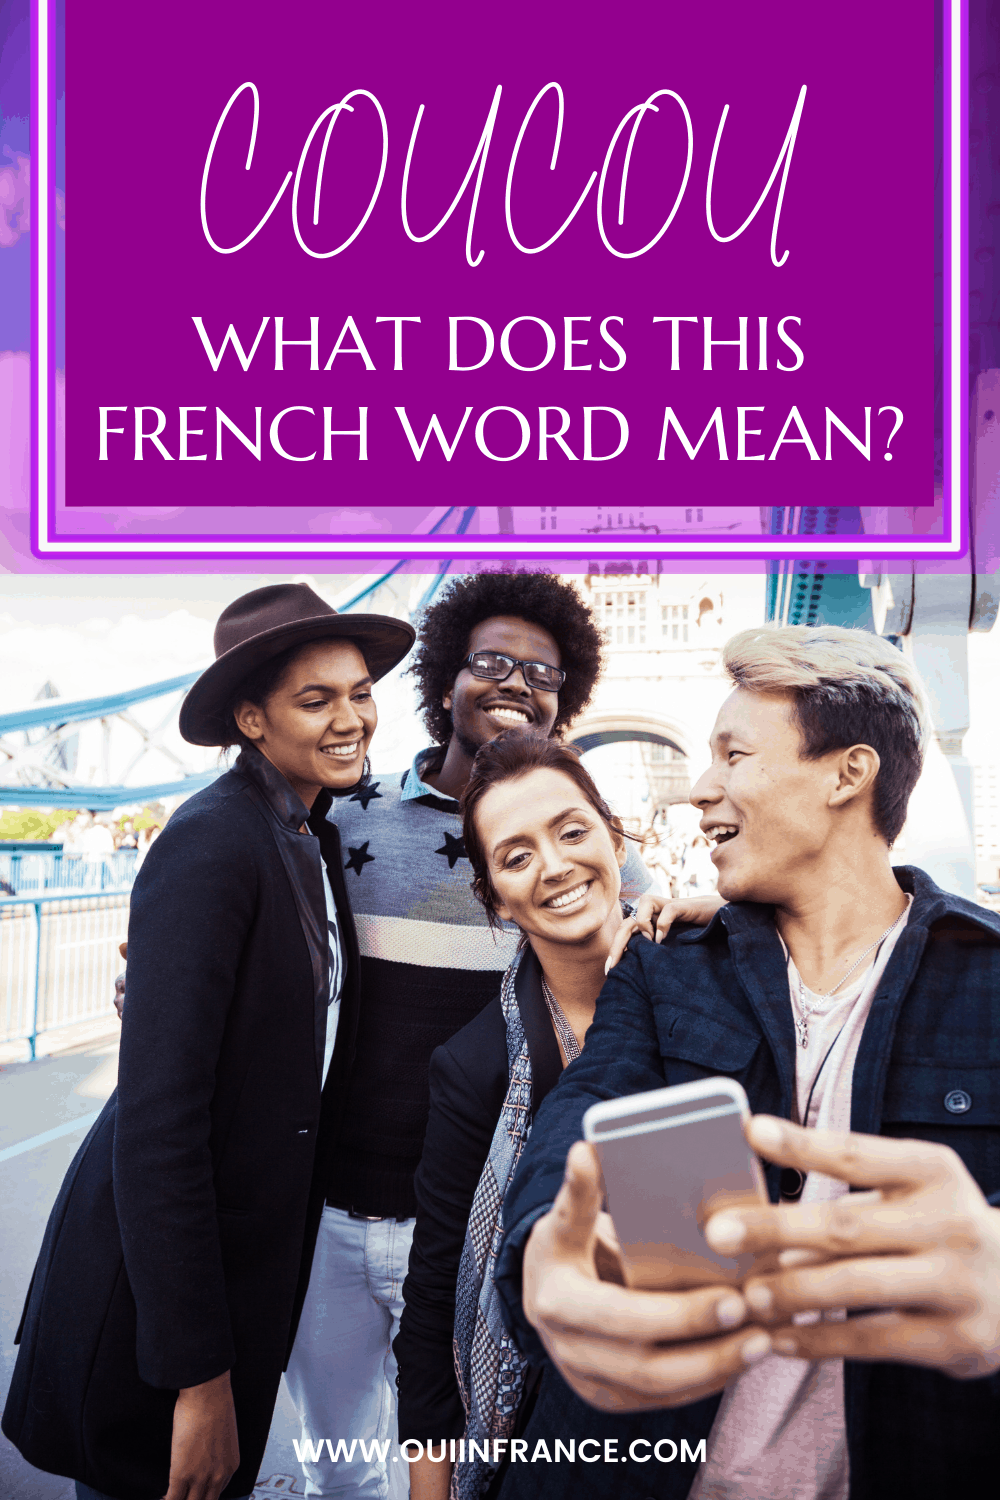 coucou meaning in english